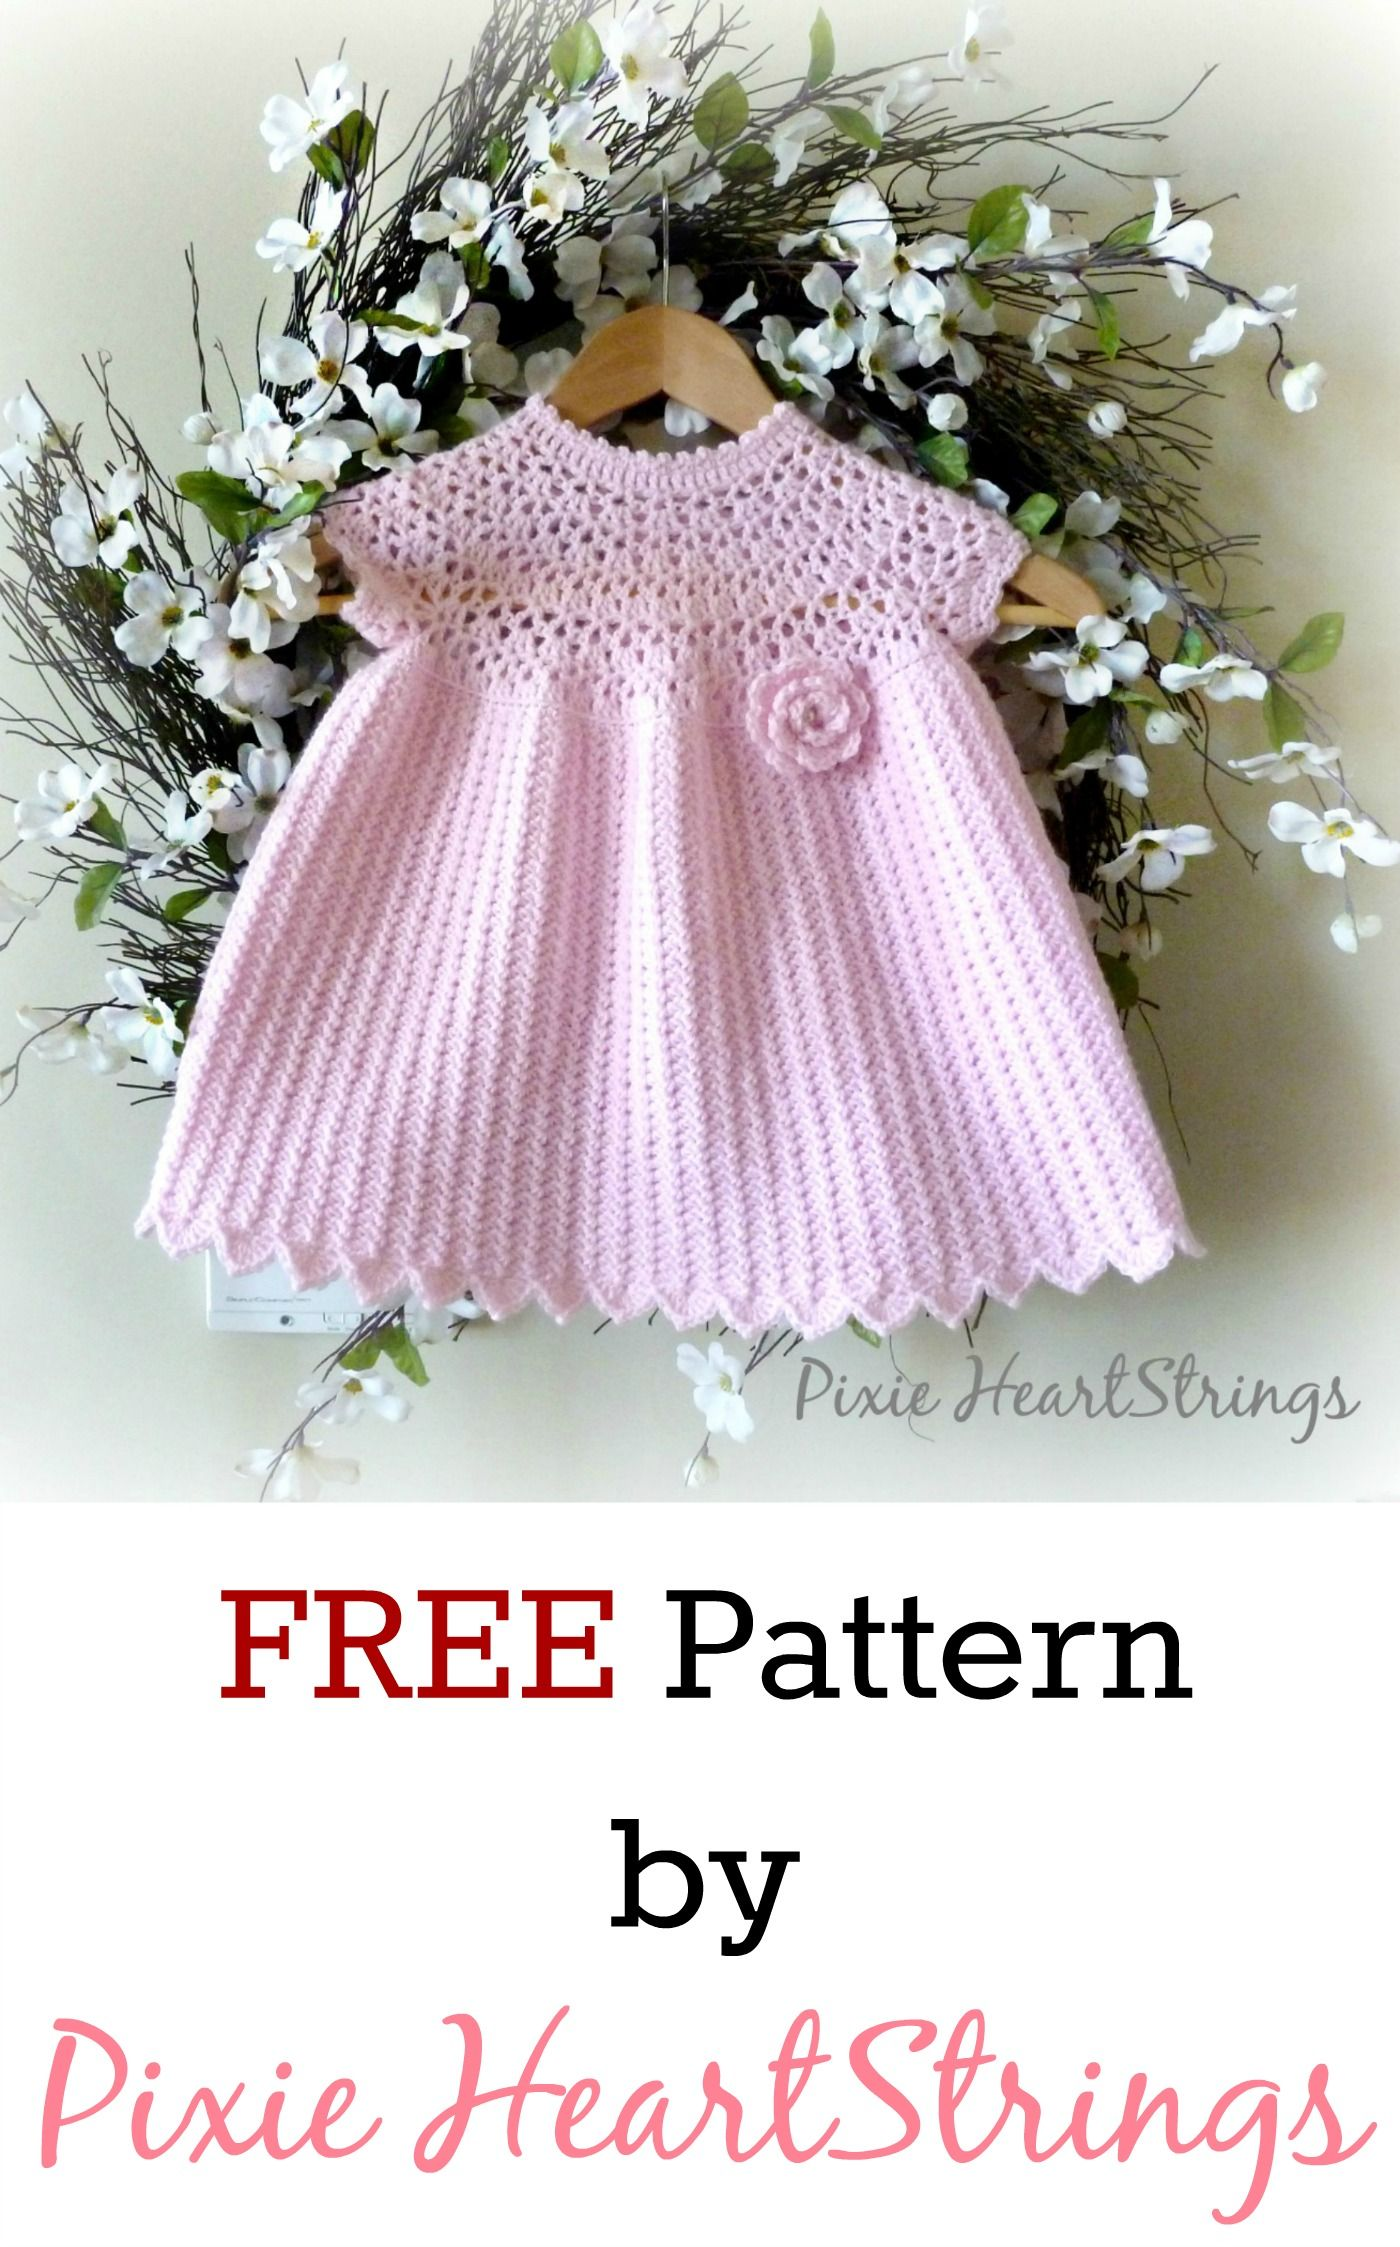 FREE Crochet baby dress pattern by Pixie HeartStrings | Baby Dress ...